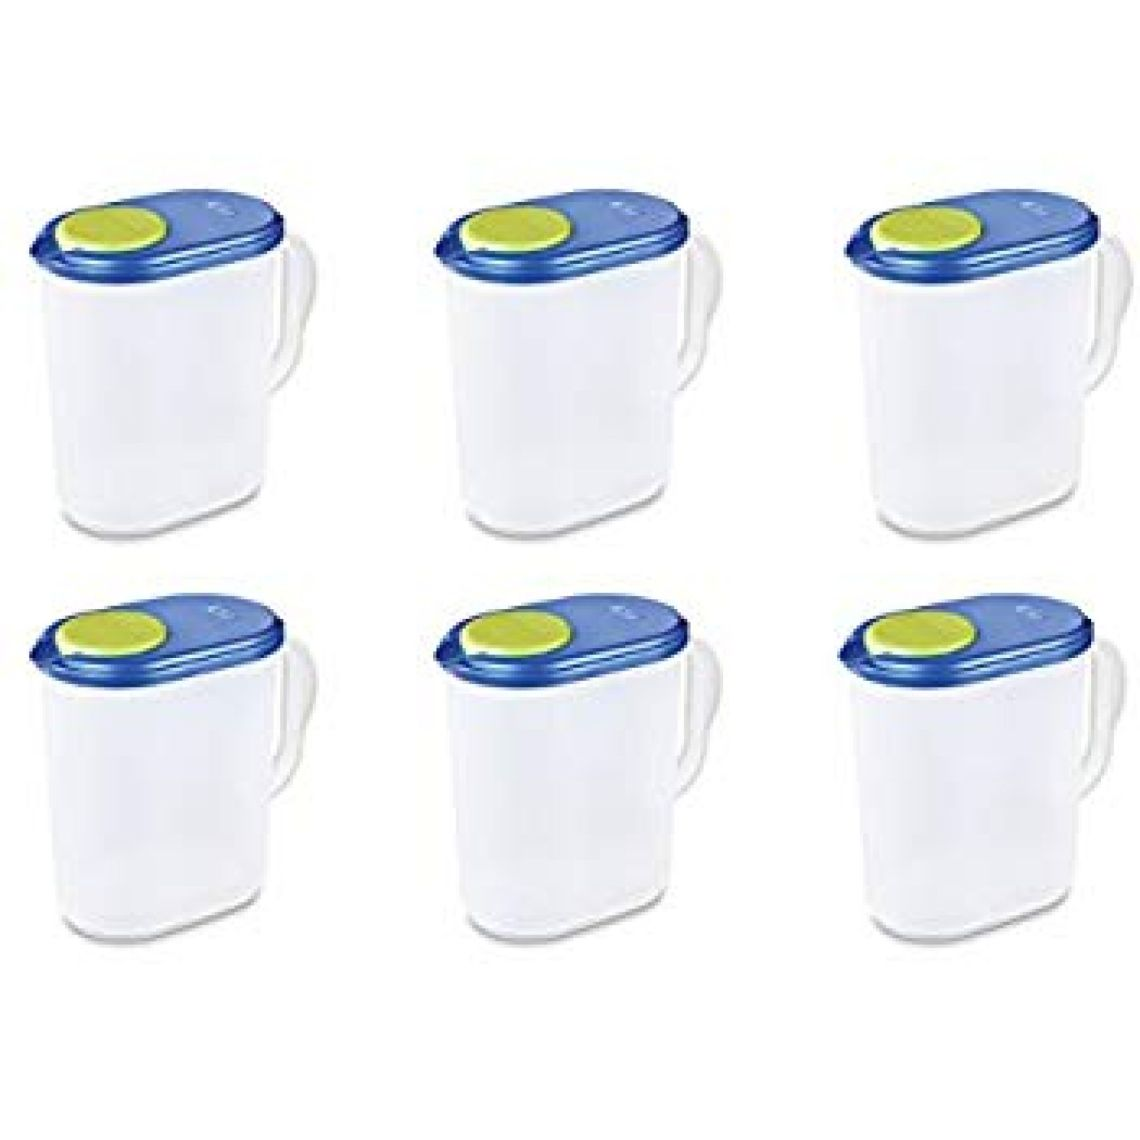 Amazon.com | Sterilite 04904106 1 Gallon Pitcher, Blue Sky Lid w/ Lime Tab & Clear Base, 6-Pack: Carafes & Pitchers